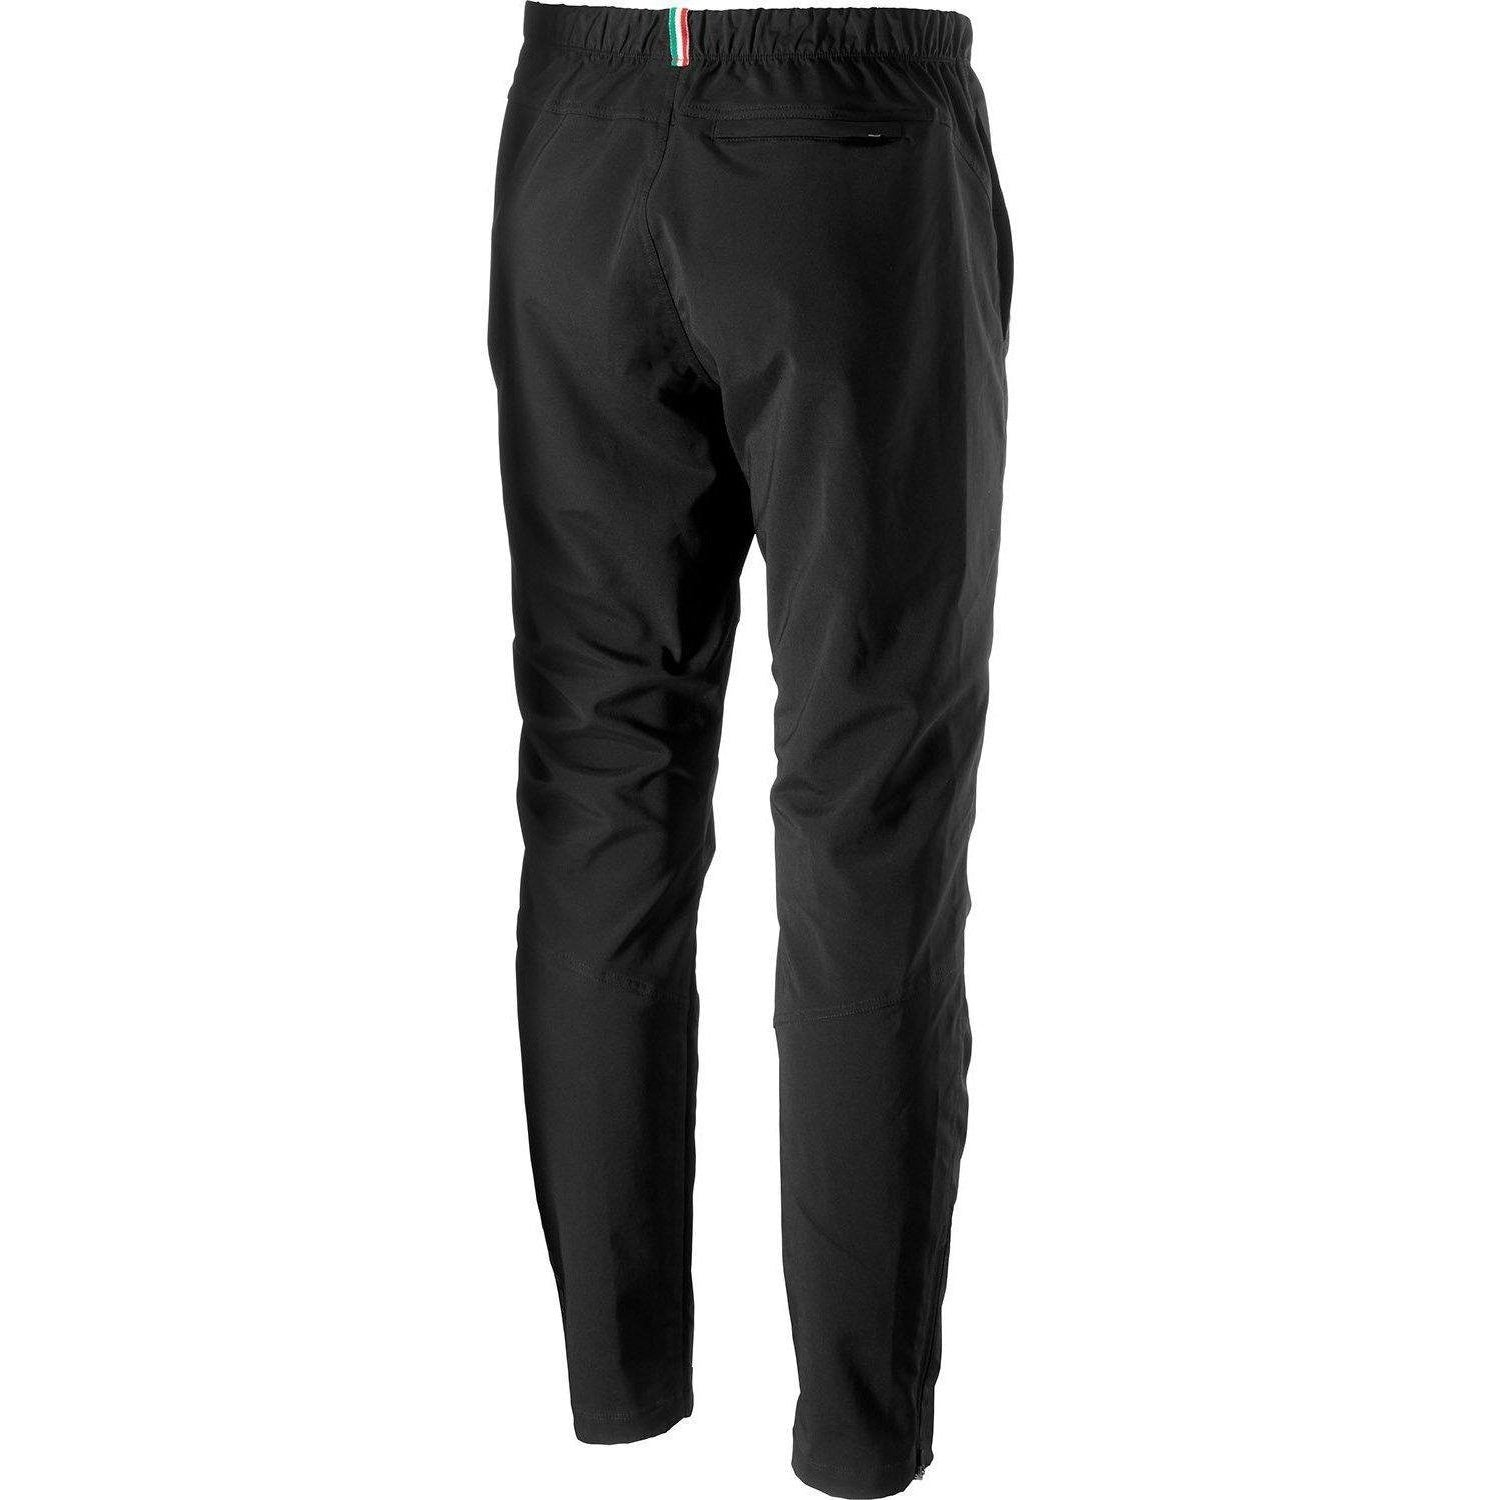 Castelli-Castelli Milano Trousers--saddleback-elite-performance-cycling